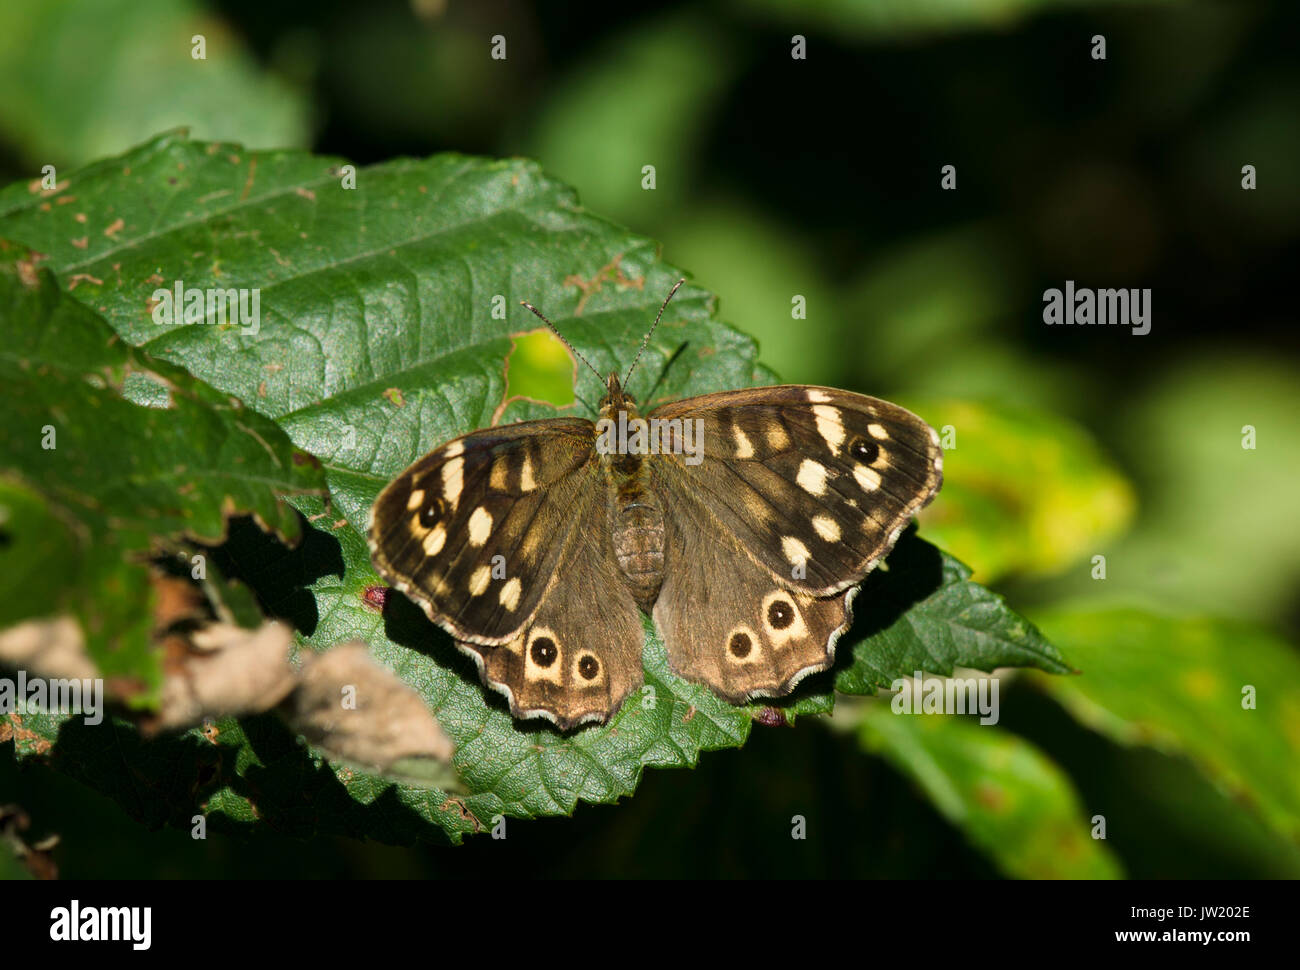 Speckled wood butterfly, Pararge aegeria sunbathing forest border, Limburg, Netherlands - Stock Image